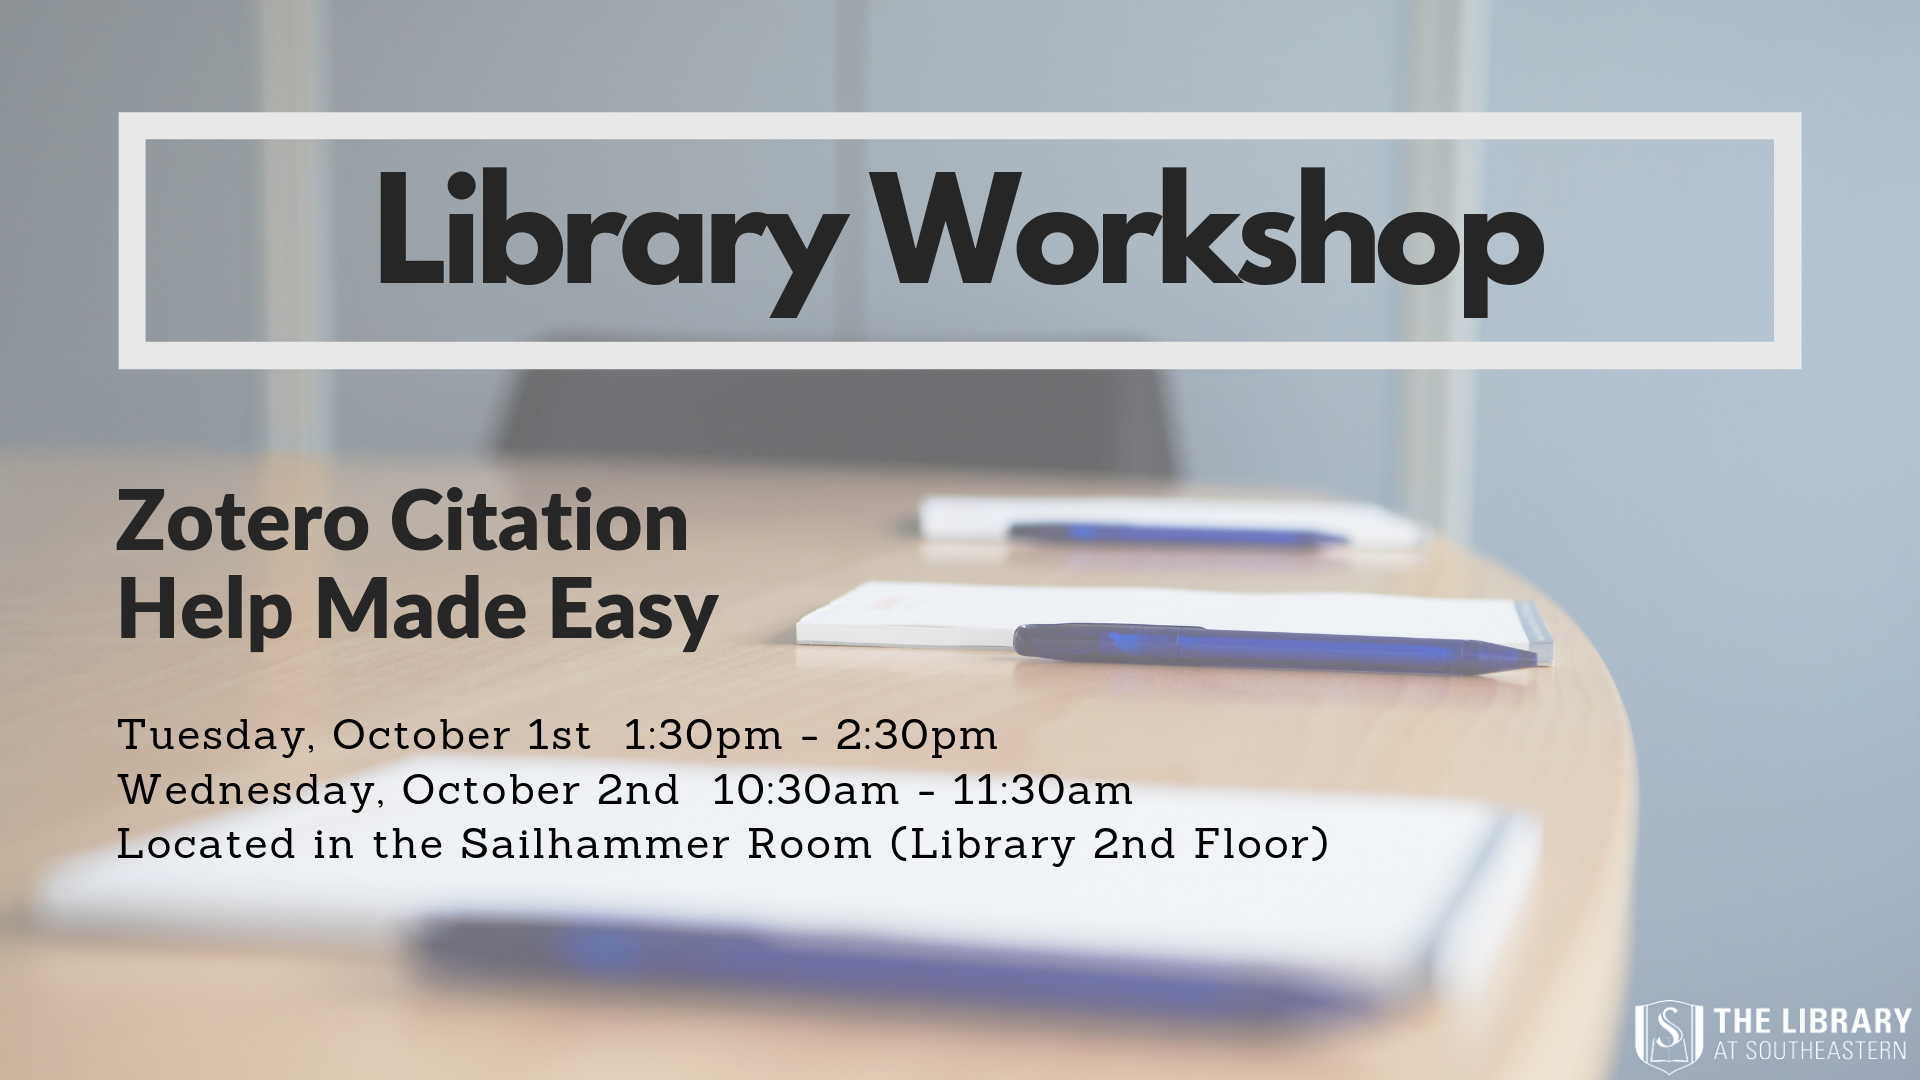 Library Workshop: Zotero Citation Help Made Easy